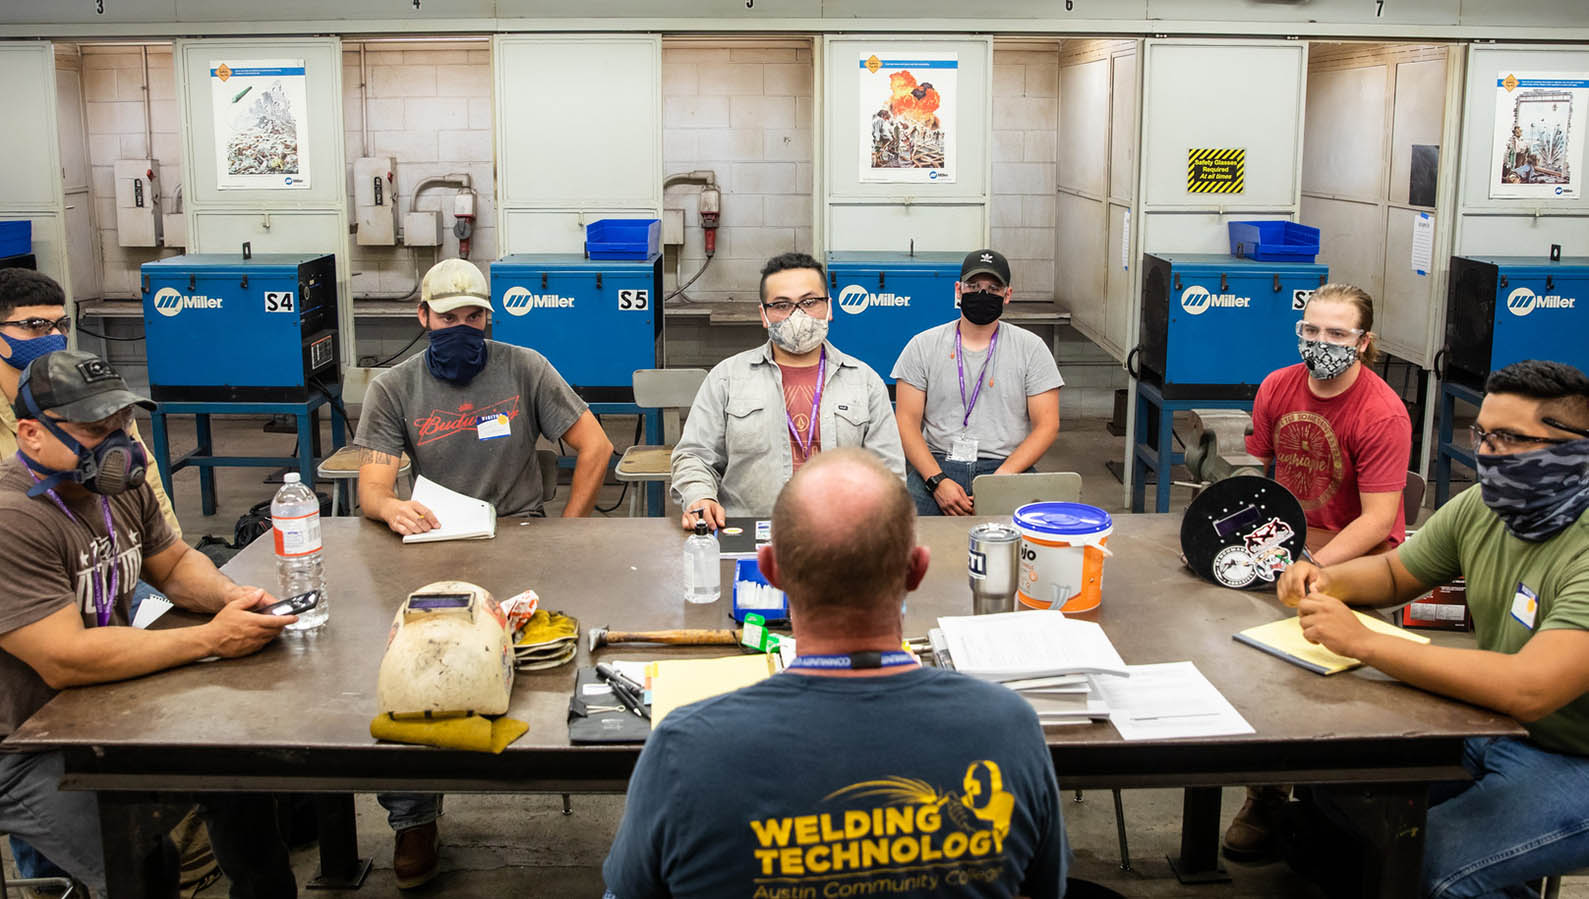 Students wearing masks listen to a lecture during a welding class.